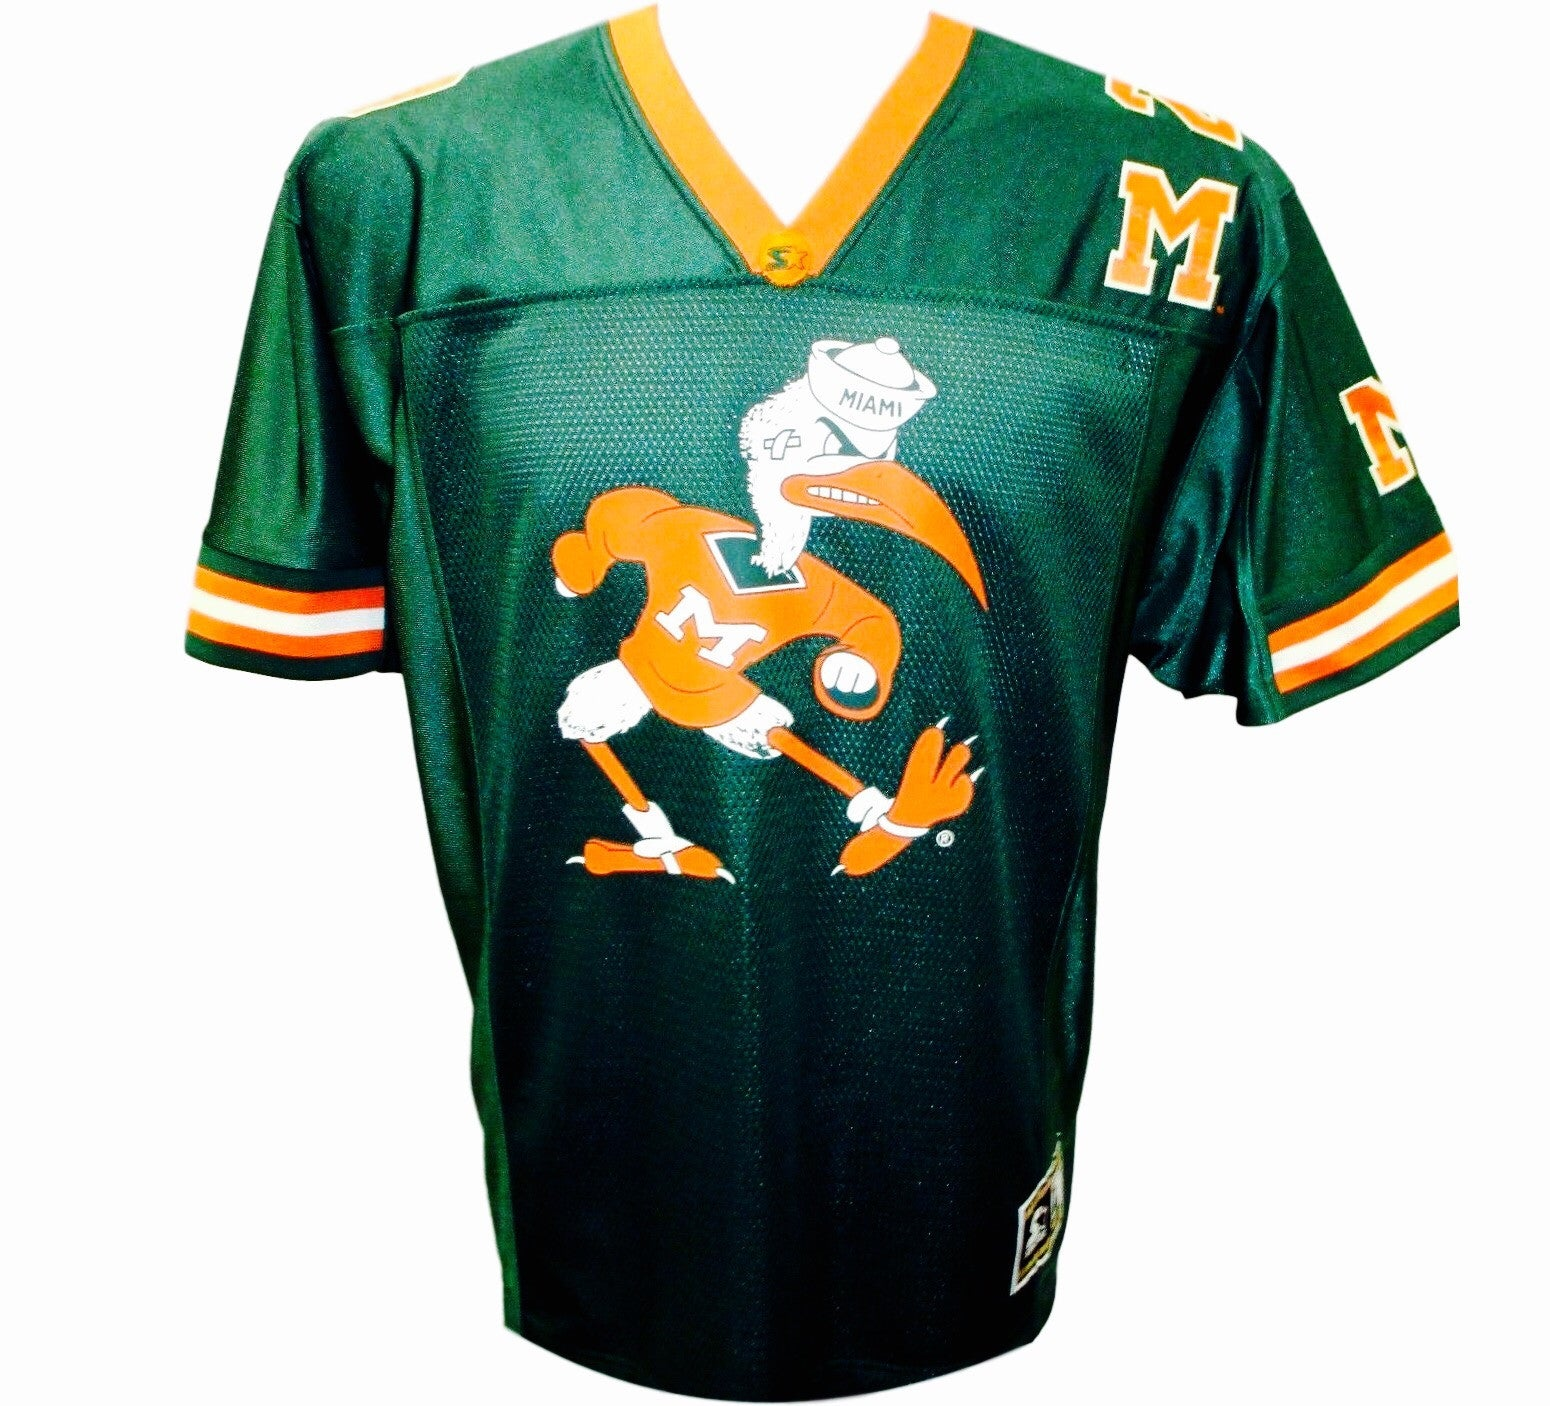 Hurricanes Retro Starter Jersey - And Still